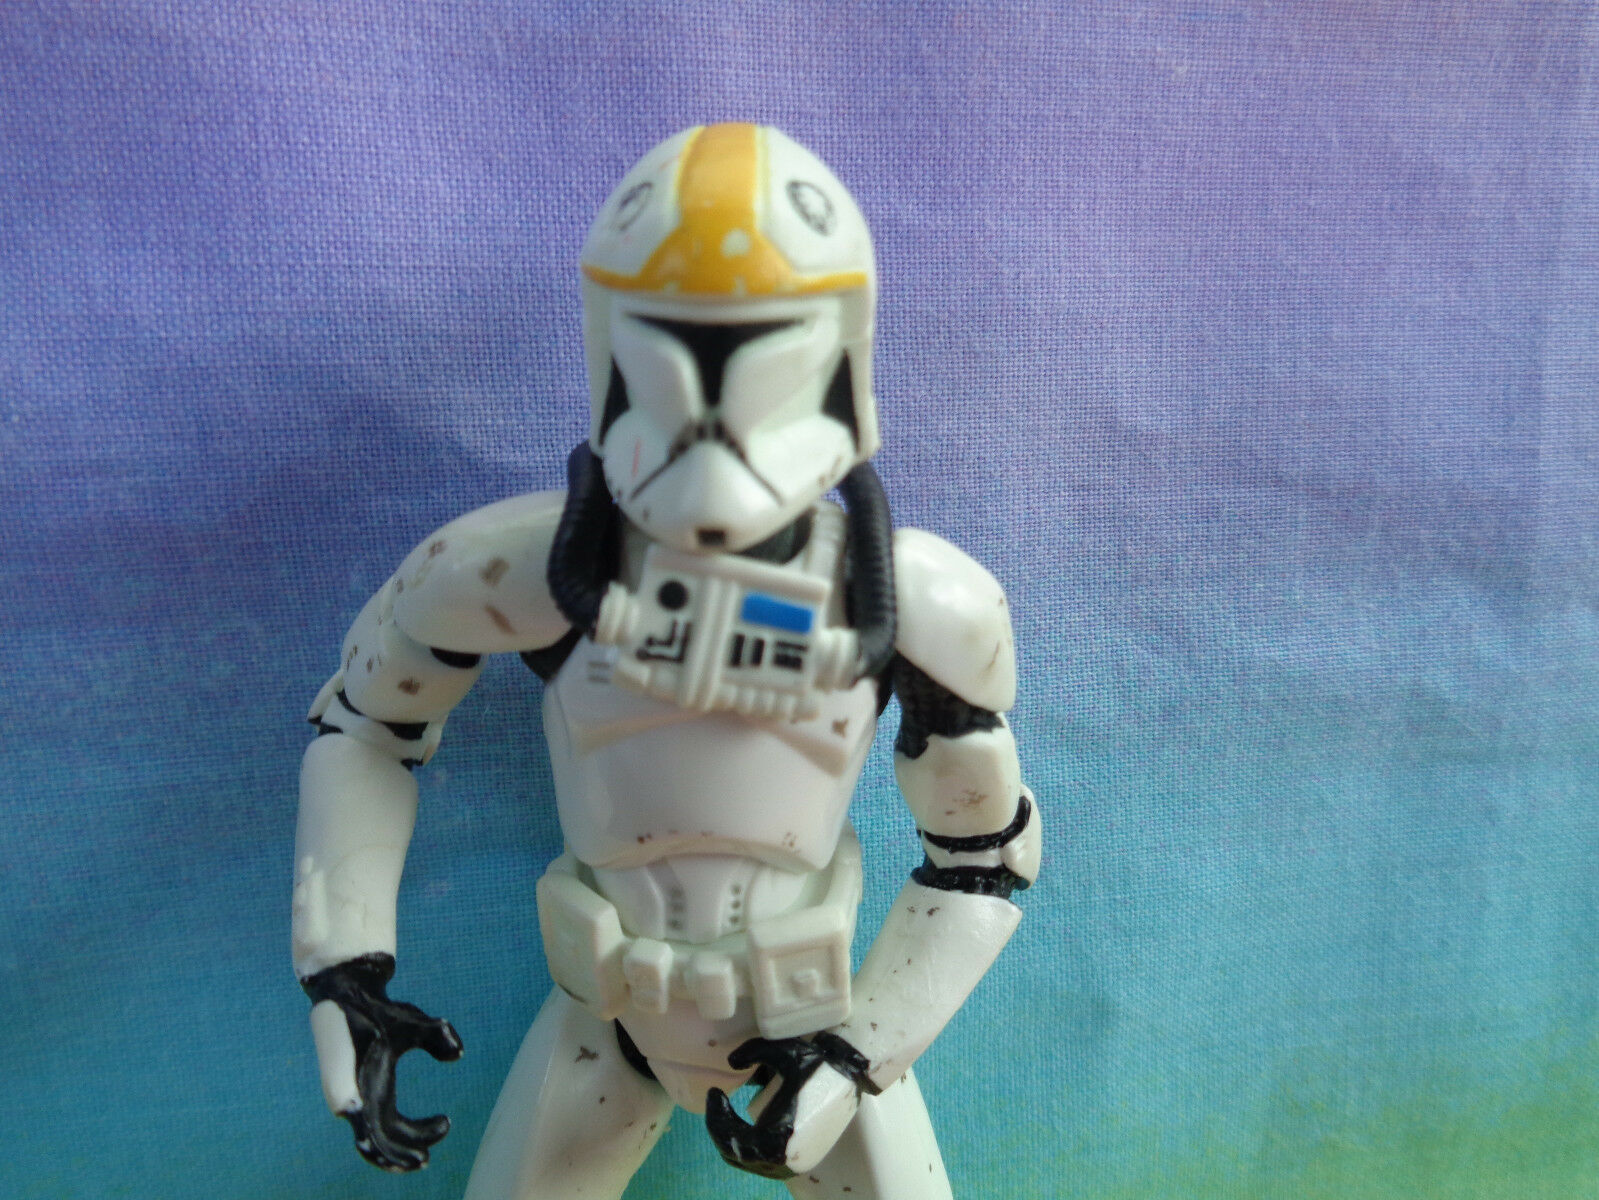 2000 Hasbro Star Wars Clone Trooper Action Figure - as is image 5